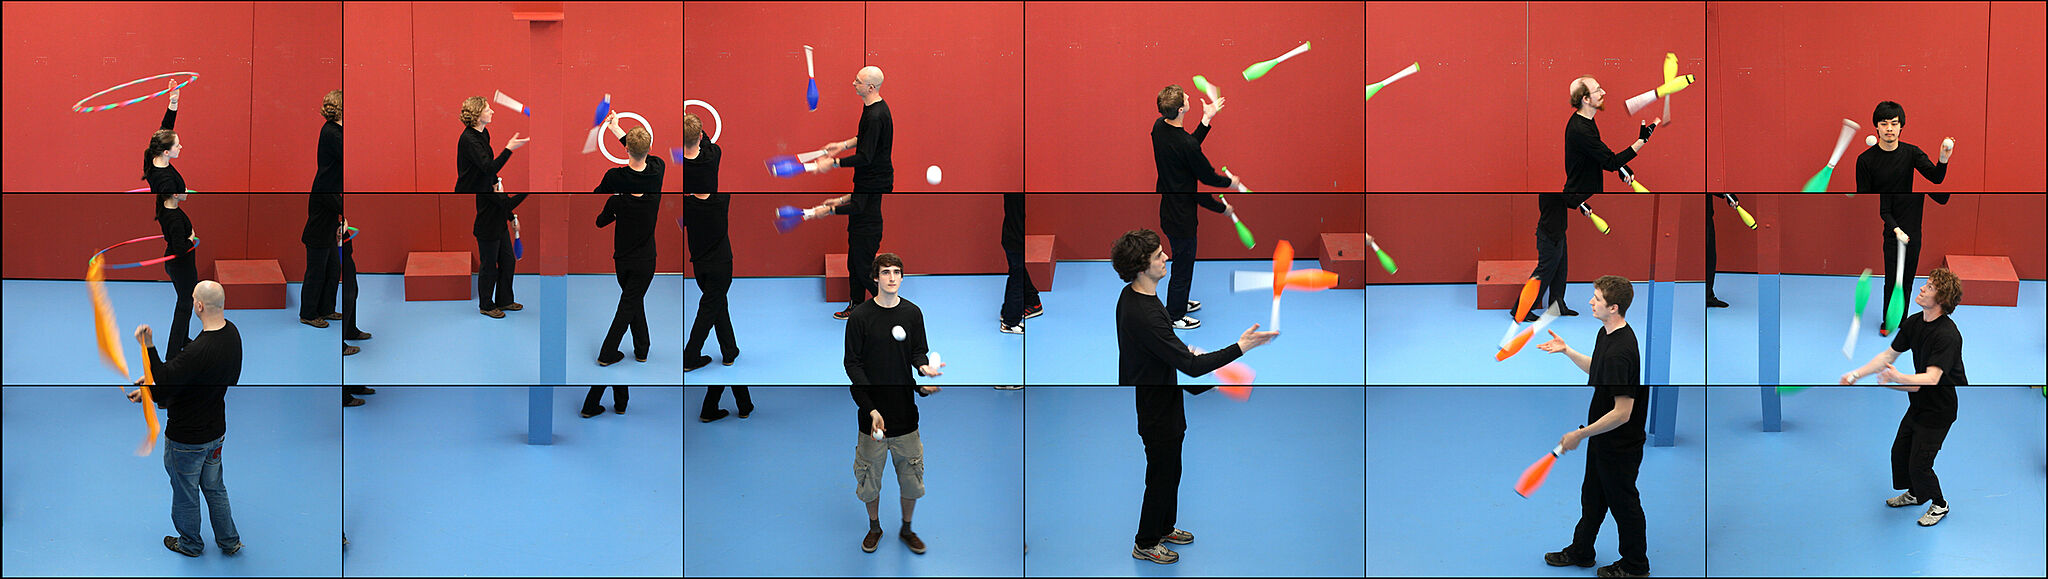 A still from David Hockney's panoramic installation depicting jugglers against a red and blue backdrop.